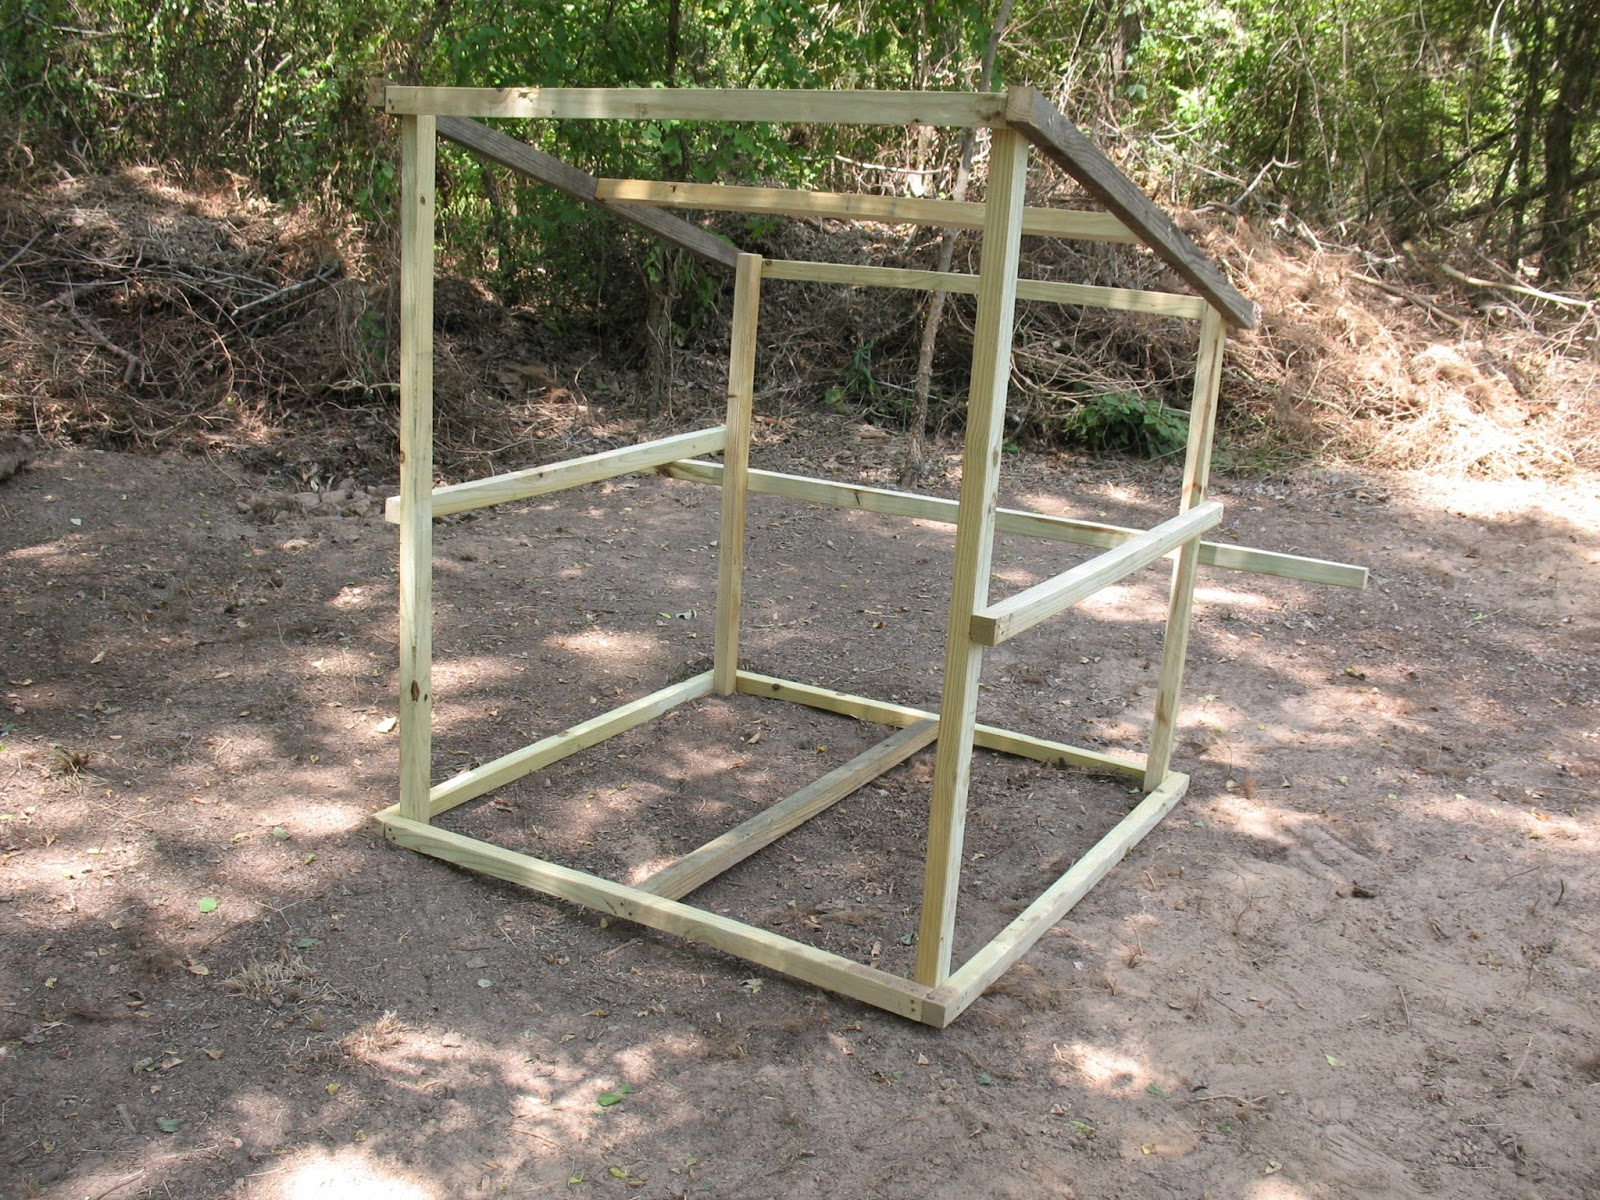 Diy Portable Shelter : Sensible survival build a portable goat shed